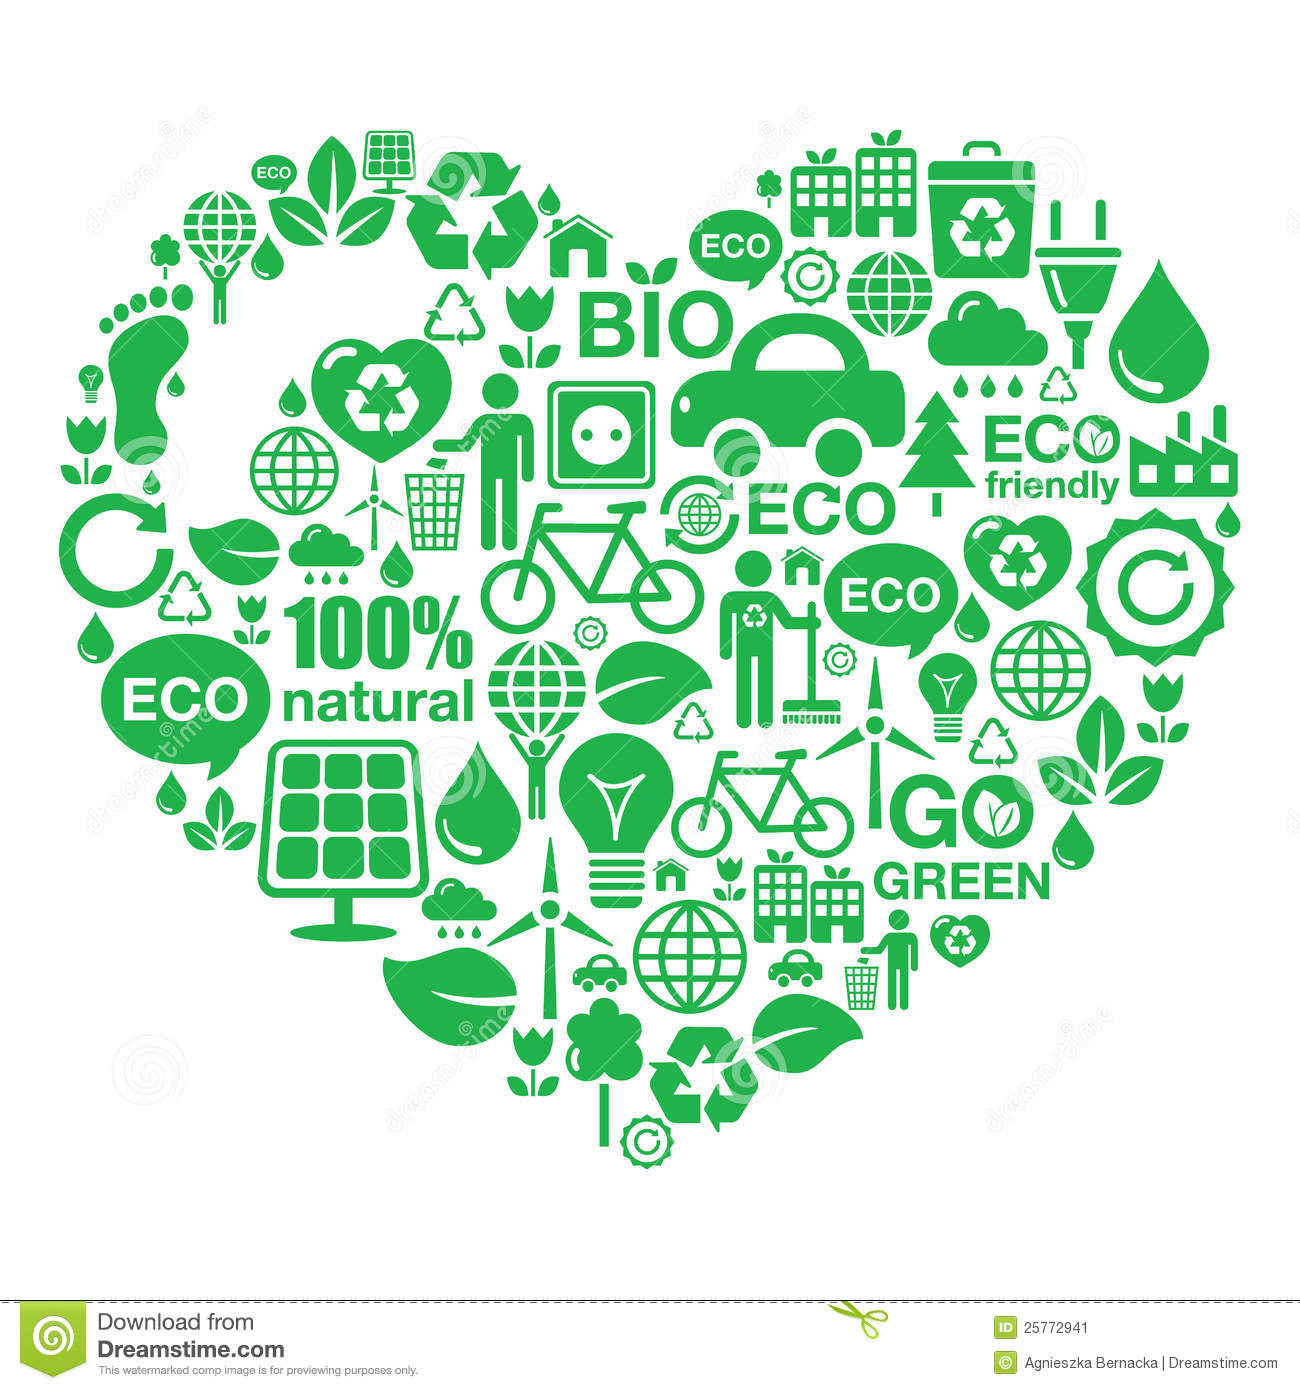 More similar stock images of ` Eco heart background - green ecology `